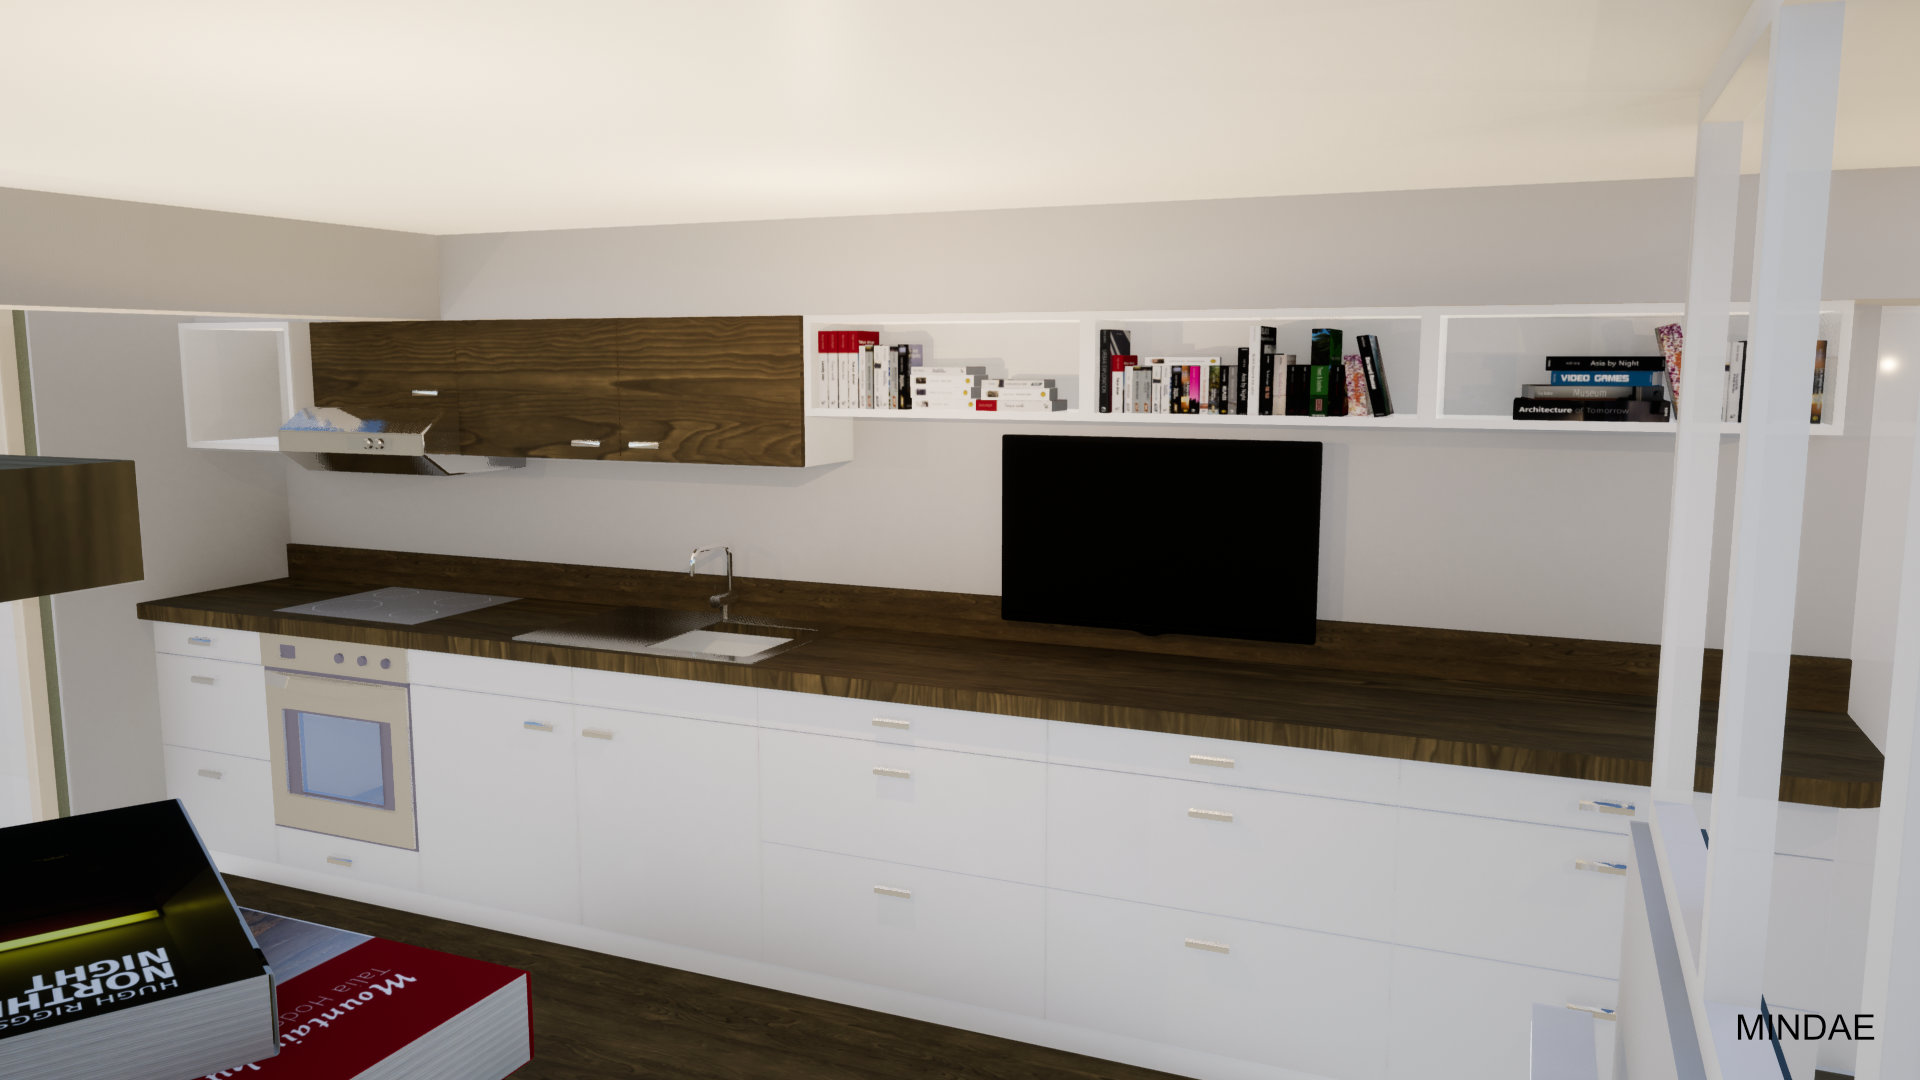 Mindae_Amenagement_appartement_studio_salon_chambre_sdb_etudiant (20)